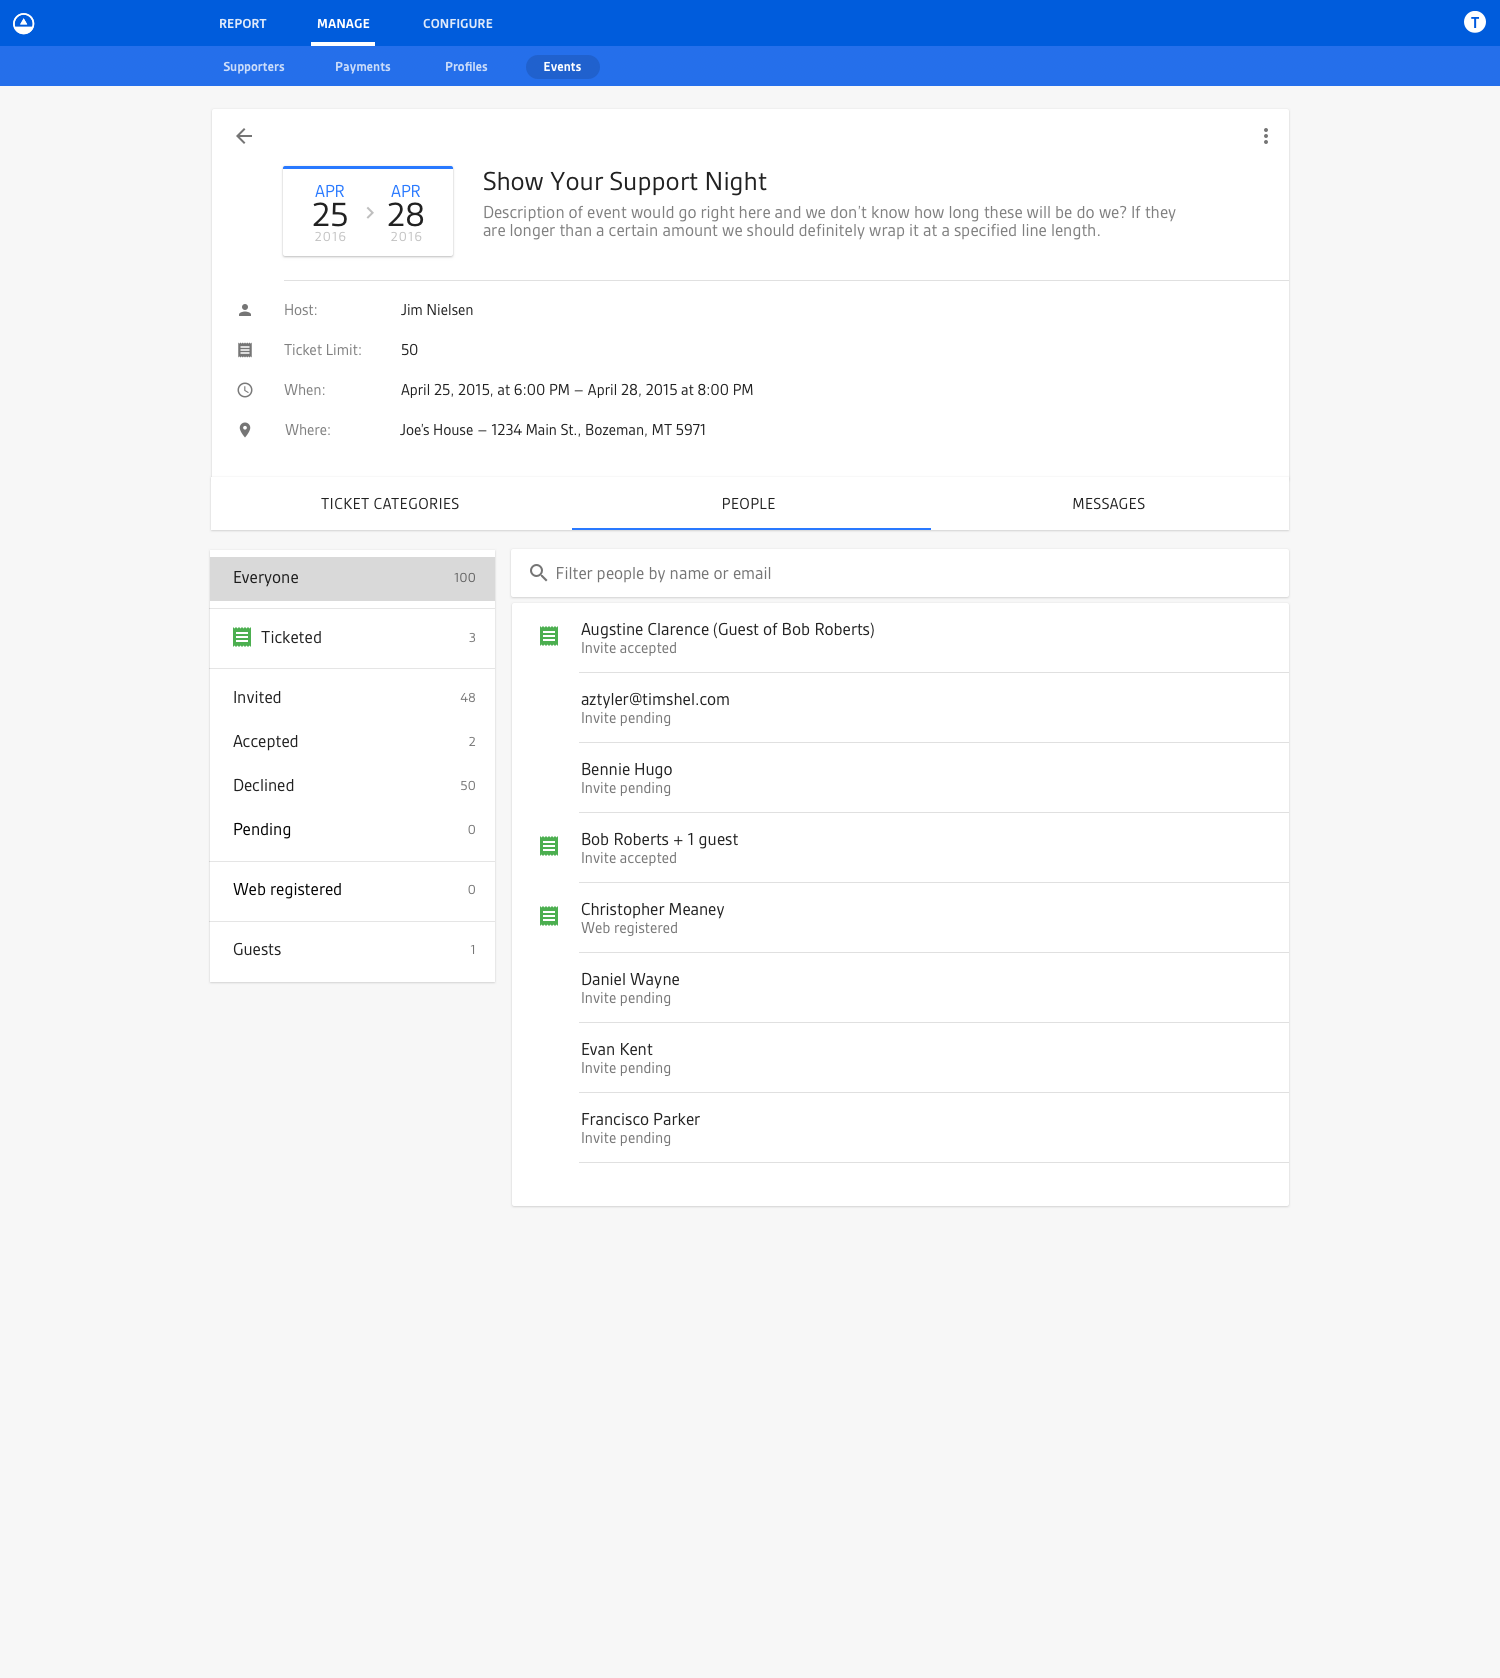 Screenshot of the fourth iteration of the individual event view for an upcoming event